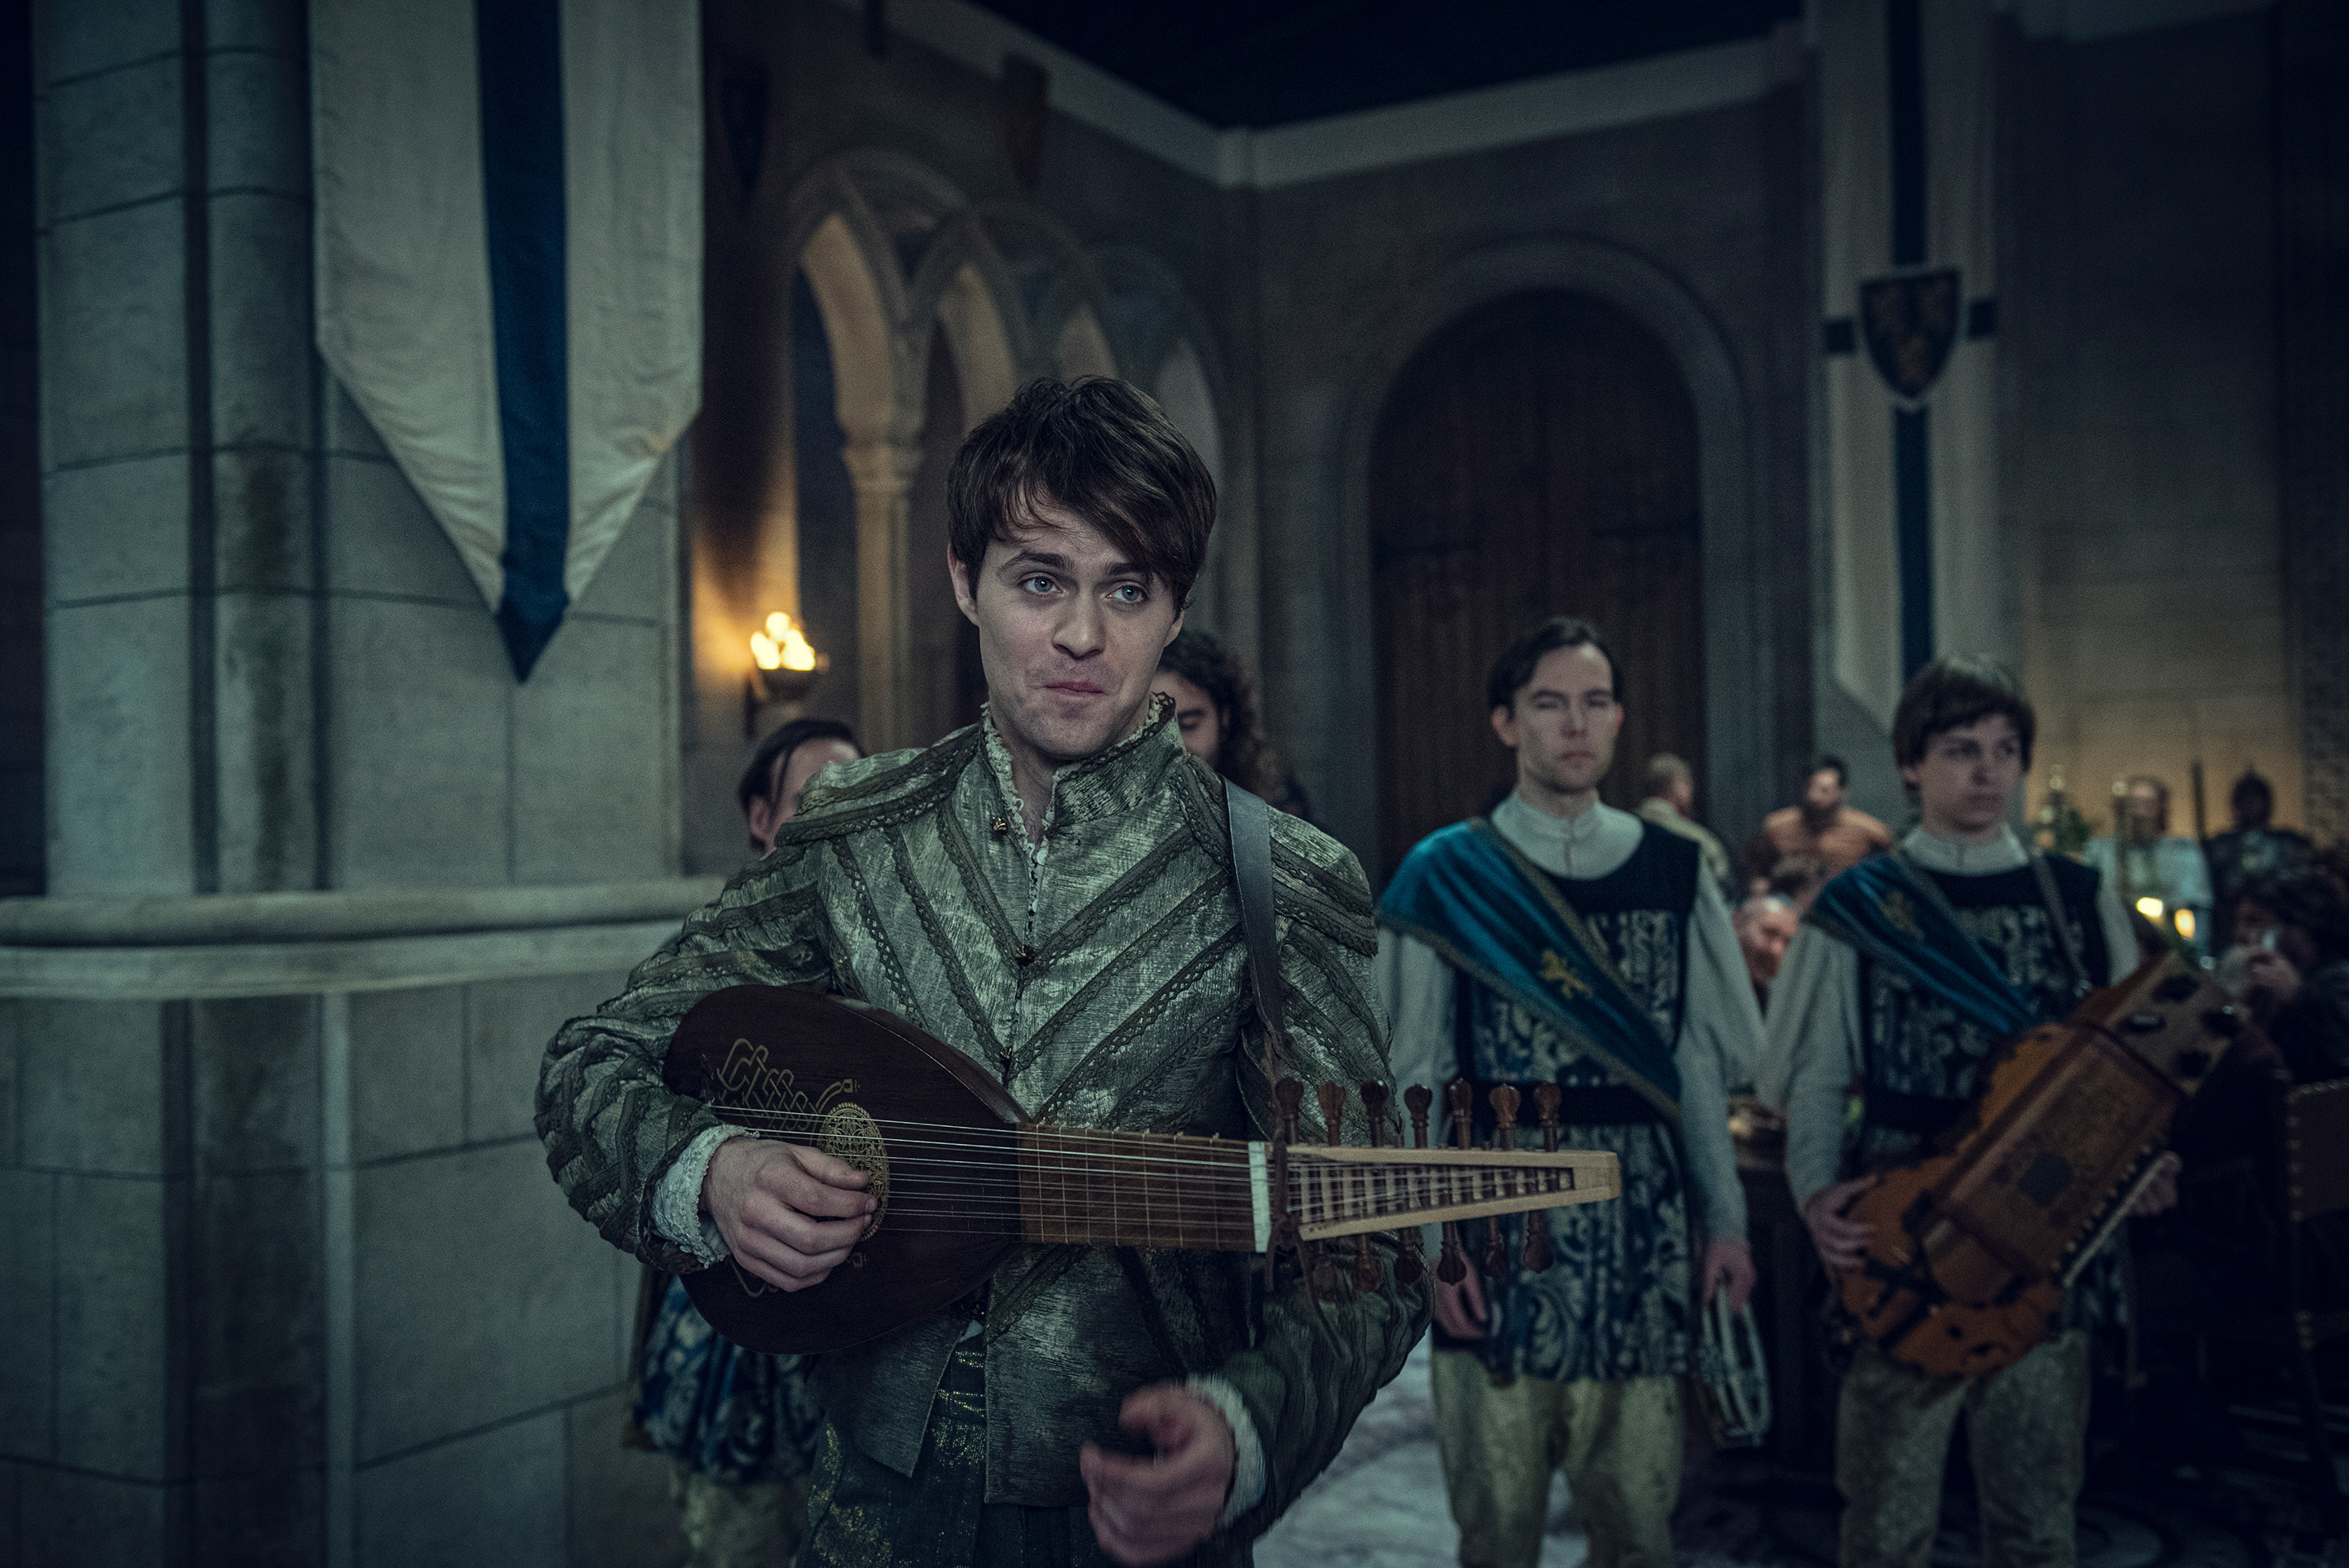 a young dark-haired man holding a lute walks into a banquet hall in The Witcher